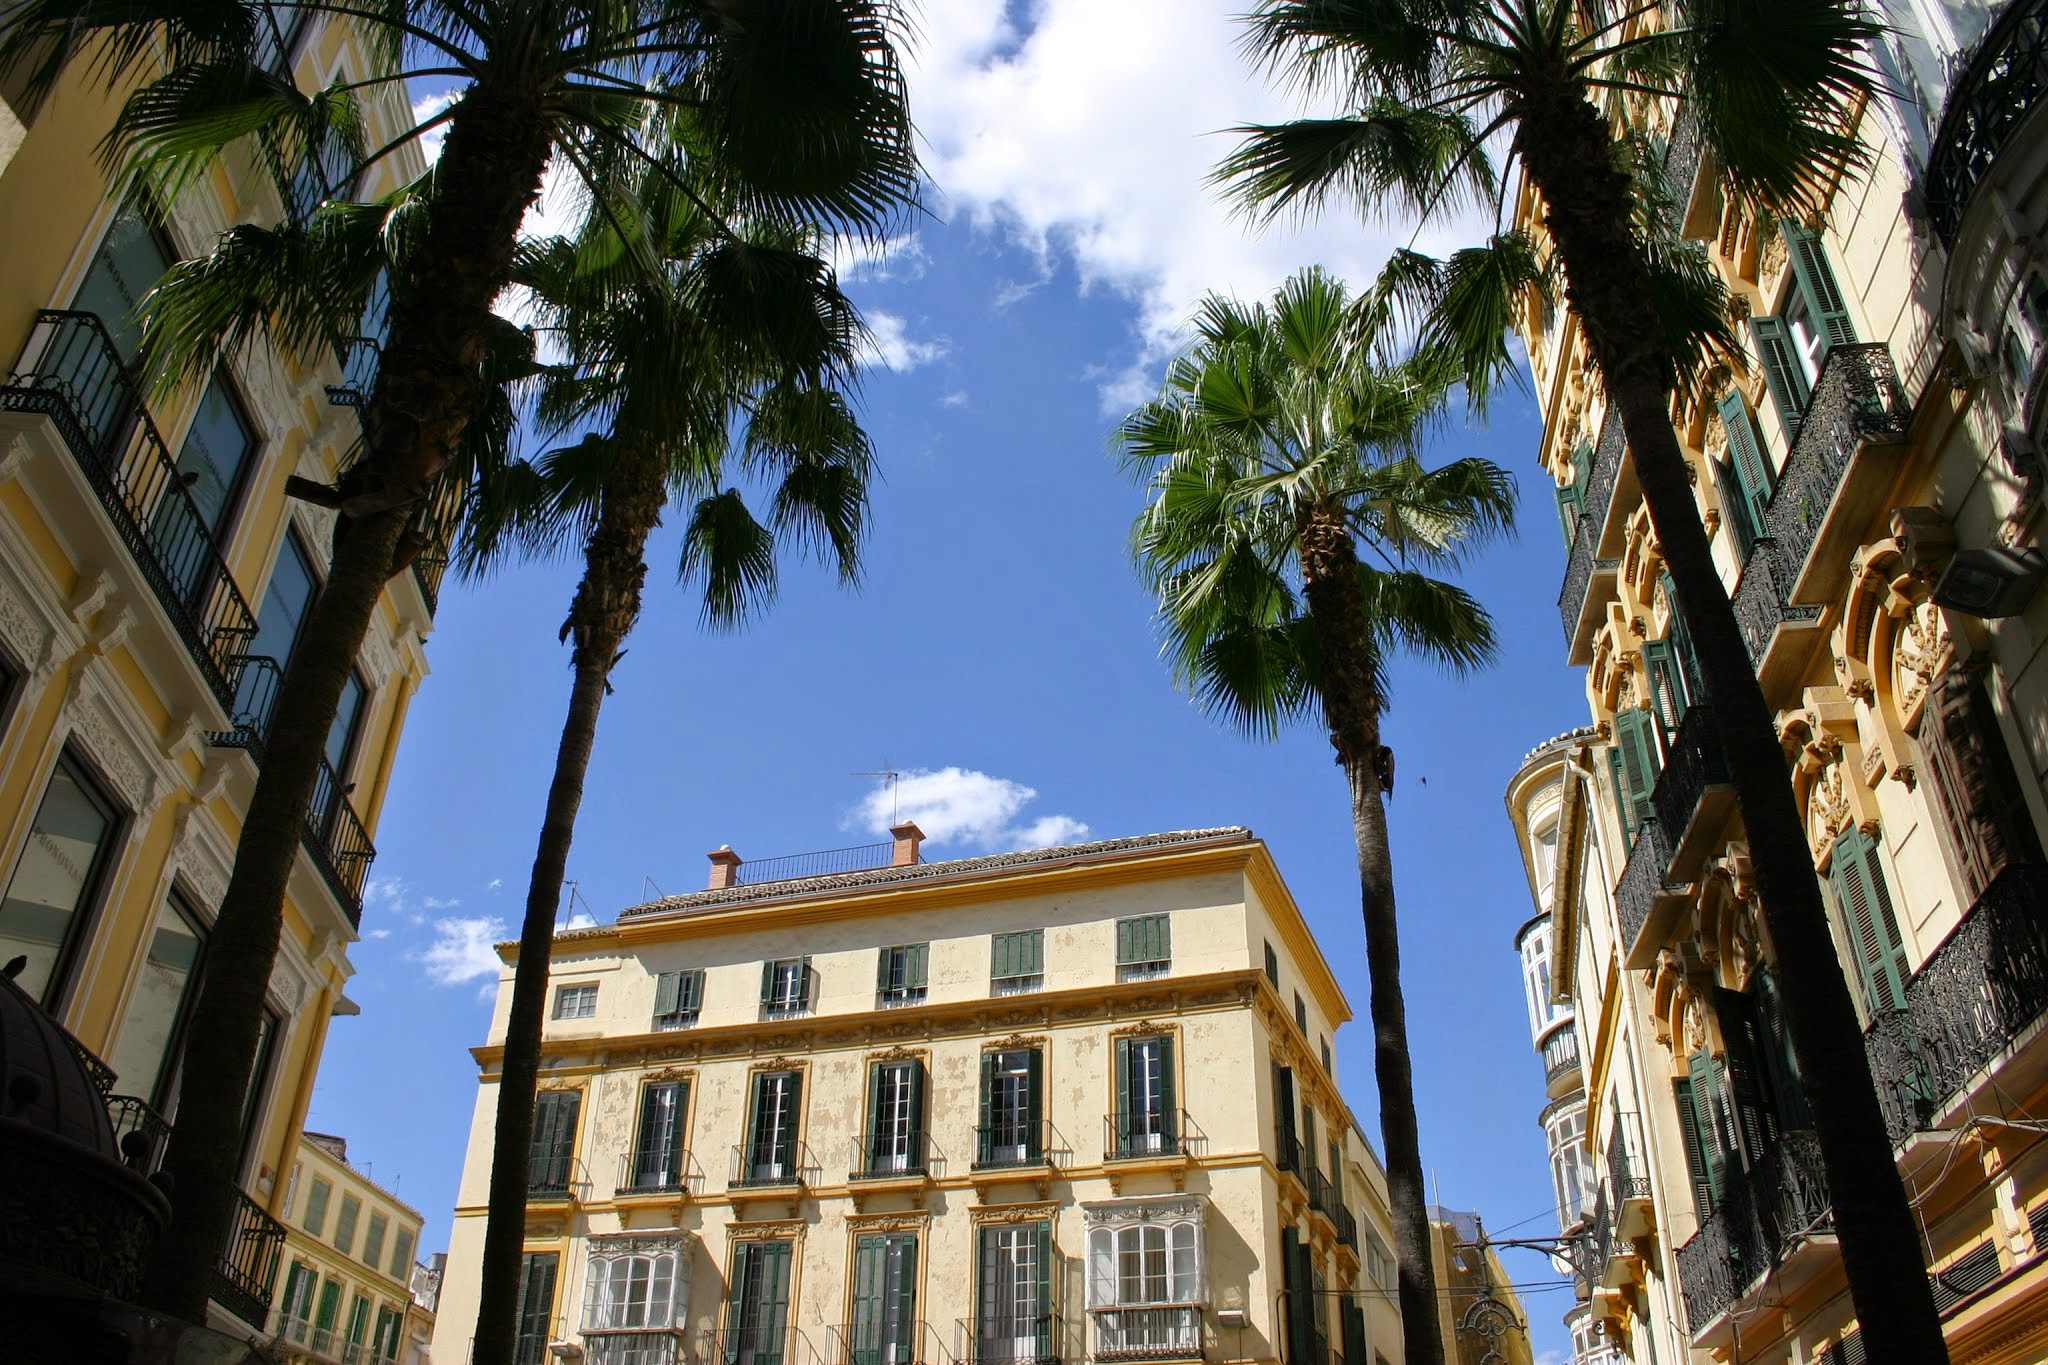 Visit historic Malaga in Southern Spain